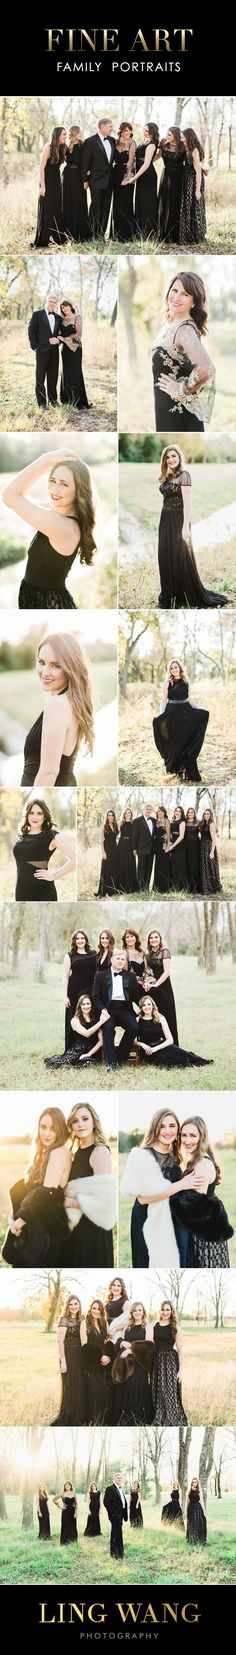 Fine Art Family Portraits  - Group posing ideas for Mature older Families - Ling Wang Photography